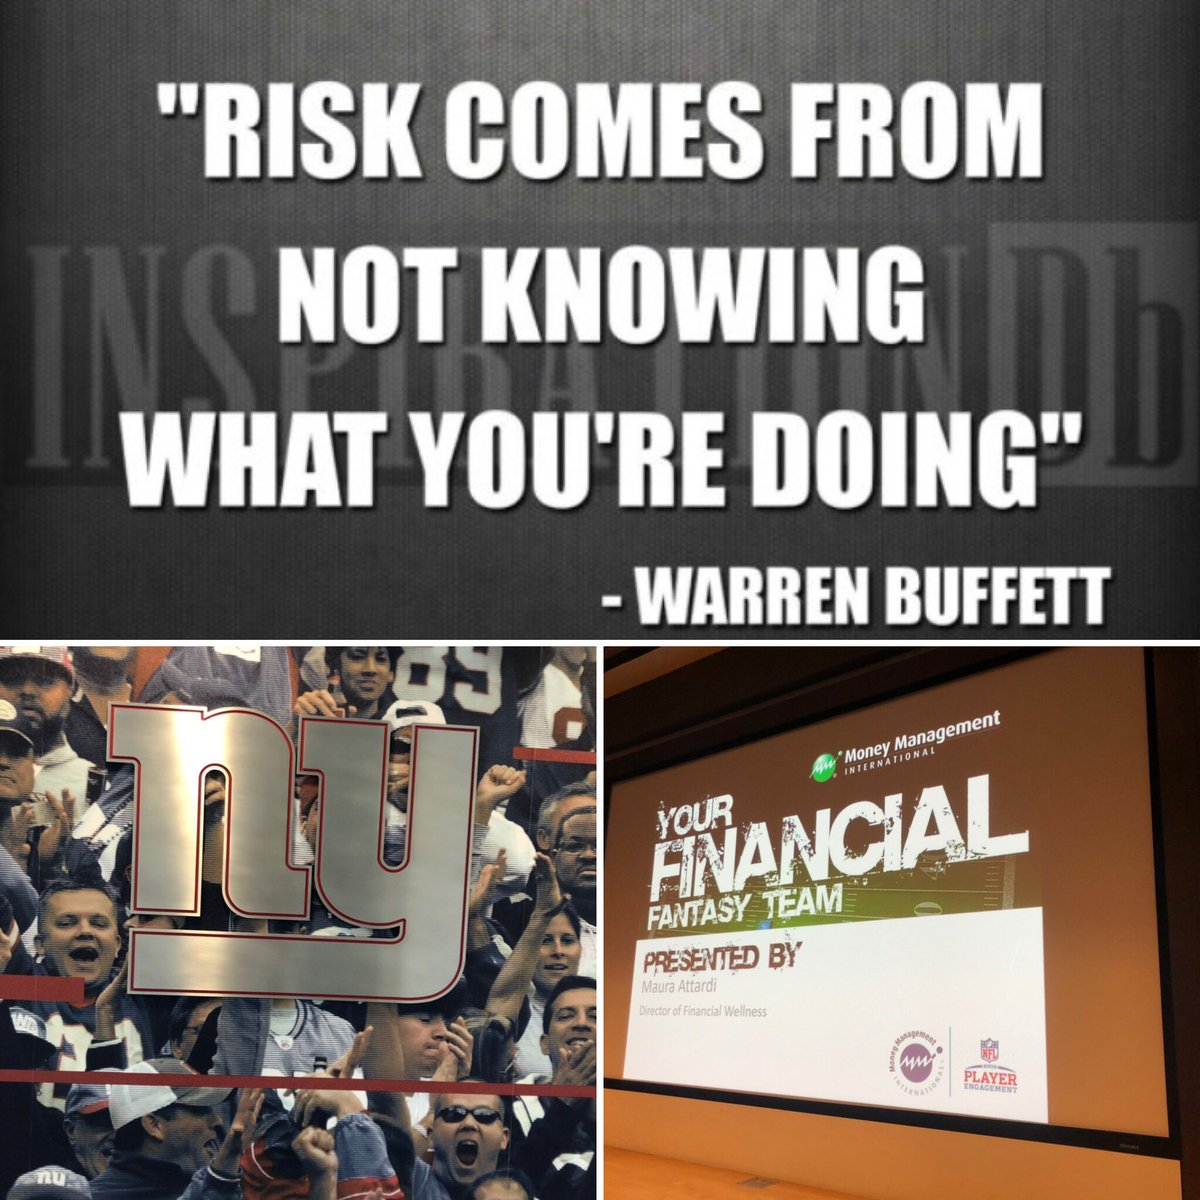 Making financial decisions without knowledge is risky! We empower our clients to make informed financial decisions through innovative and proven solutions. Start your financial journey today at https://t.co/m37qxh3KsA!